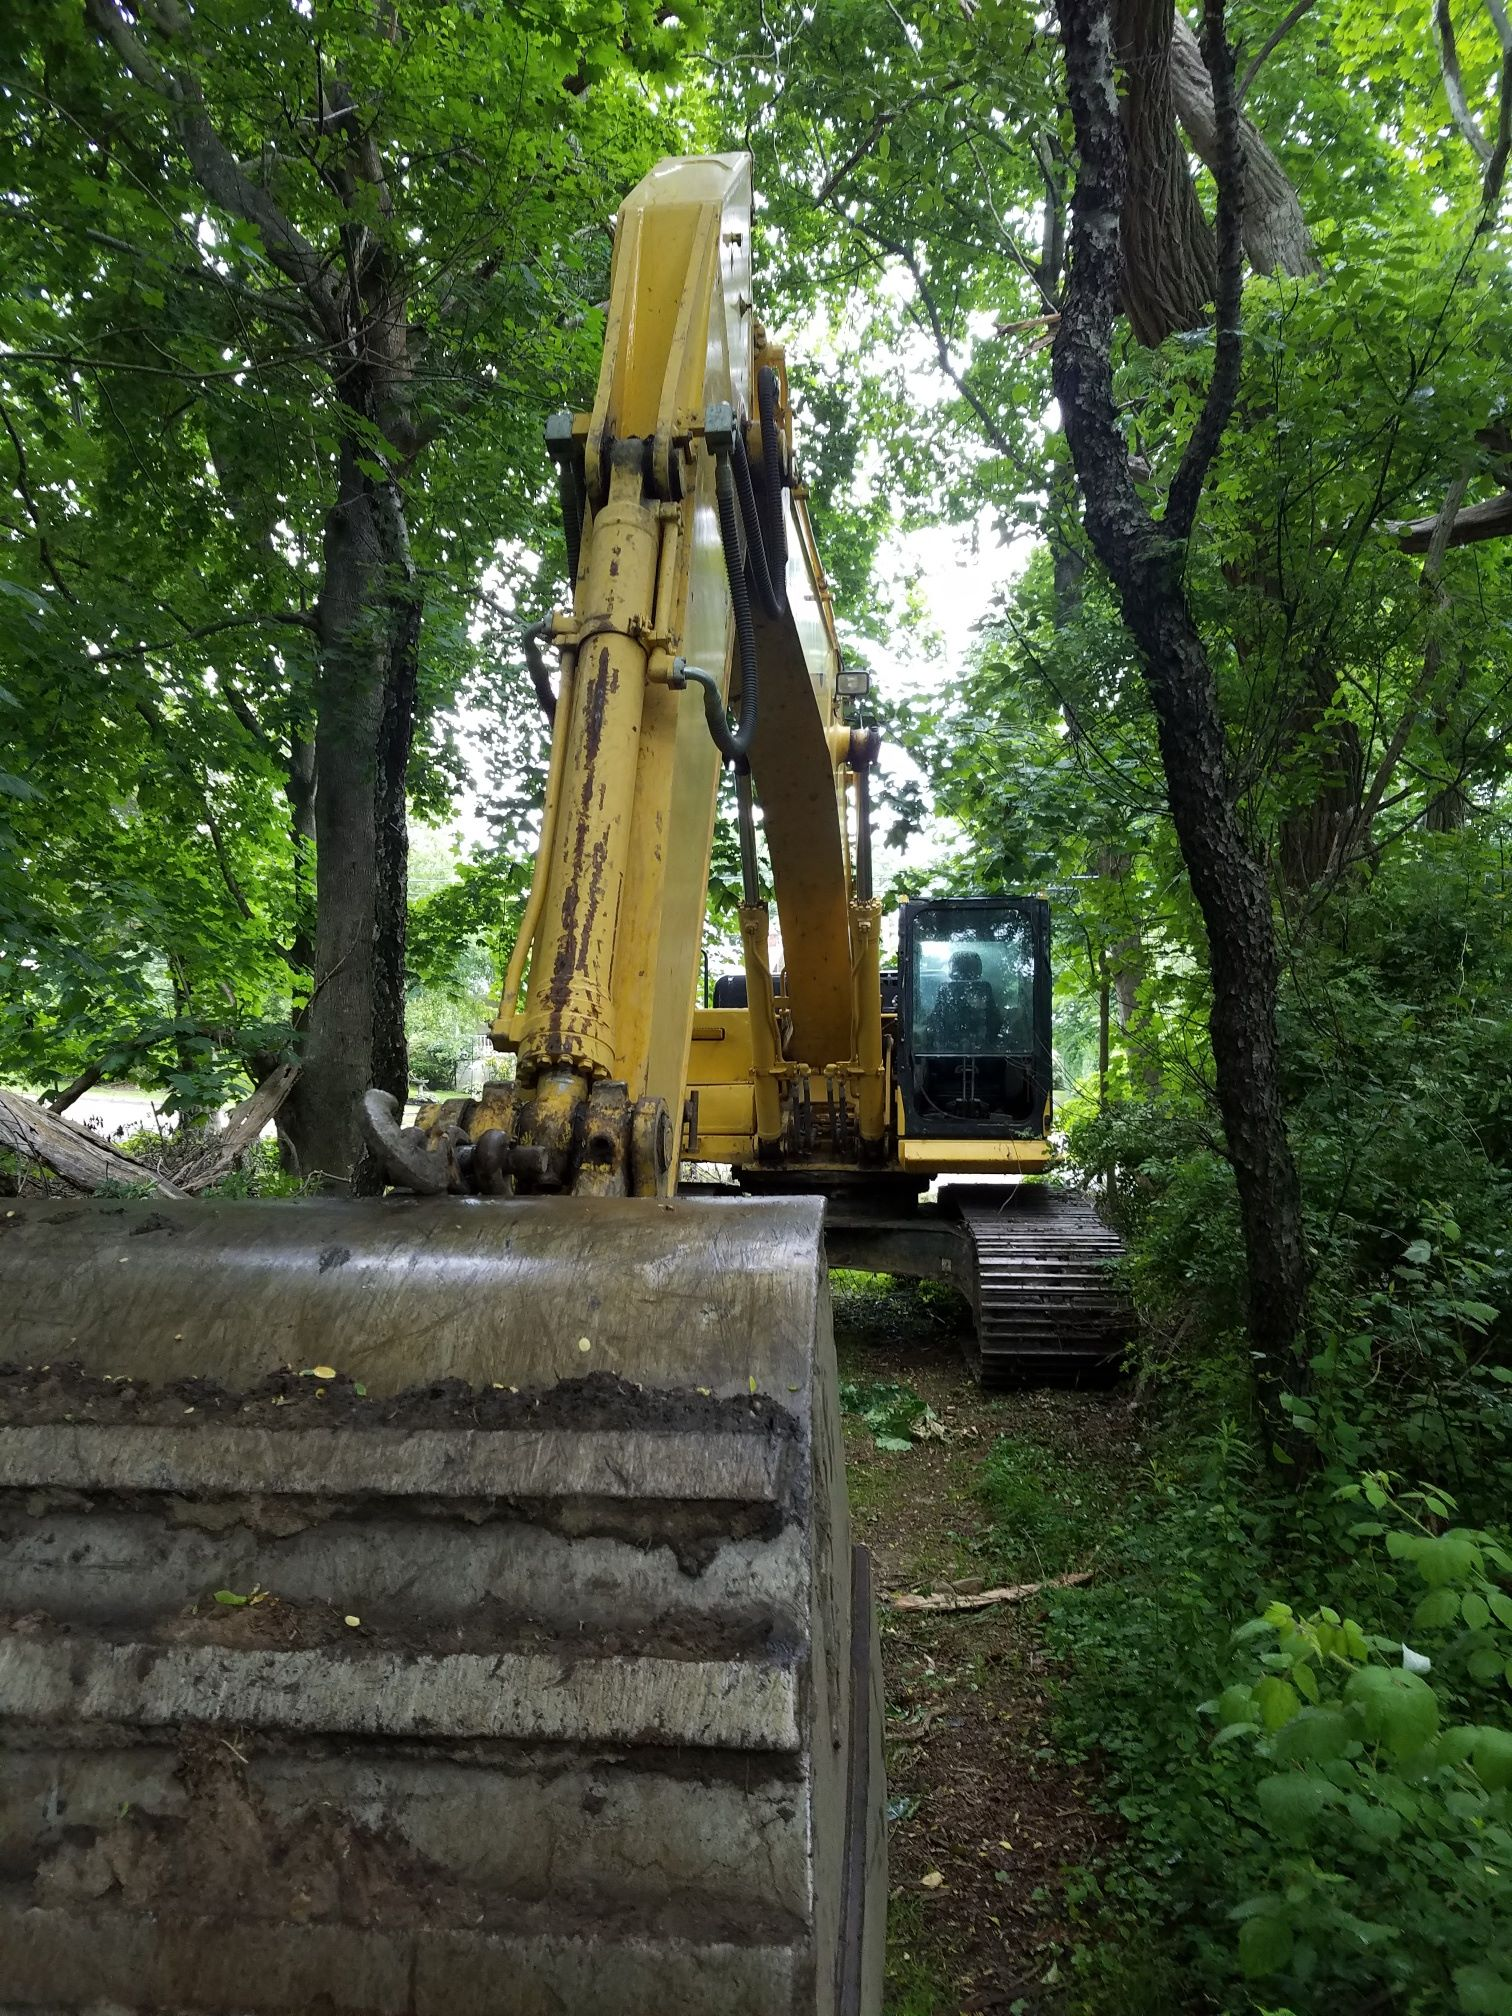 Engineer Approved Drainage Plans Threaten Sensitive Natural Habitat  In Long Island's North Fork